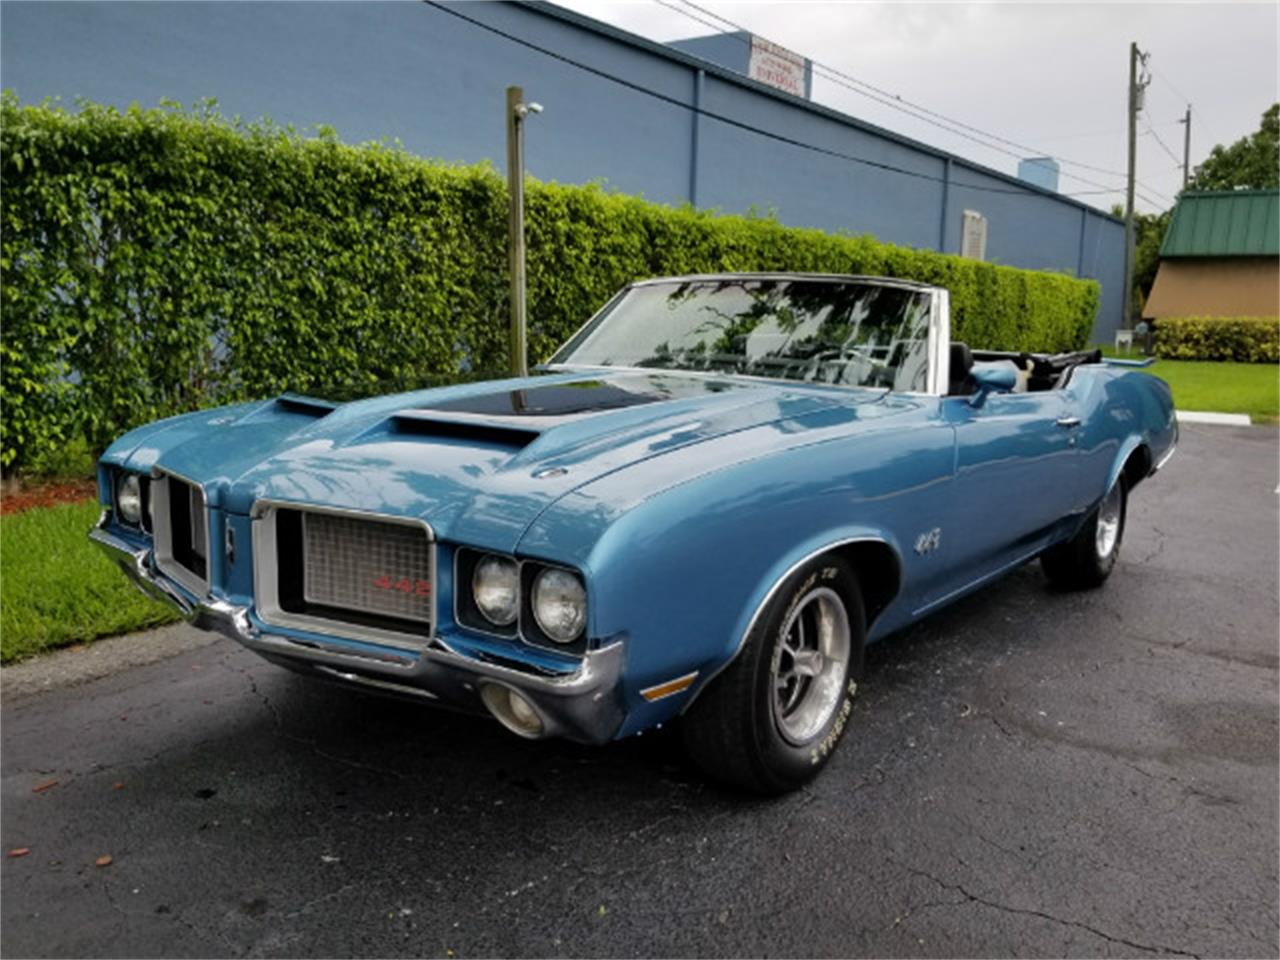 Large Picture of Classic '72 Oldsmobile 442 located in Florida - $37,800.00 - M89W